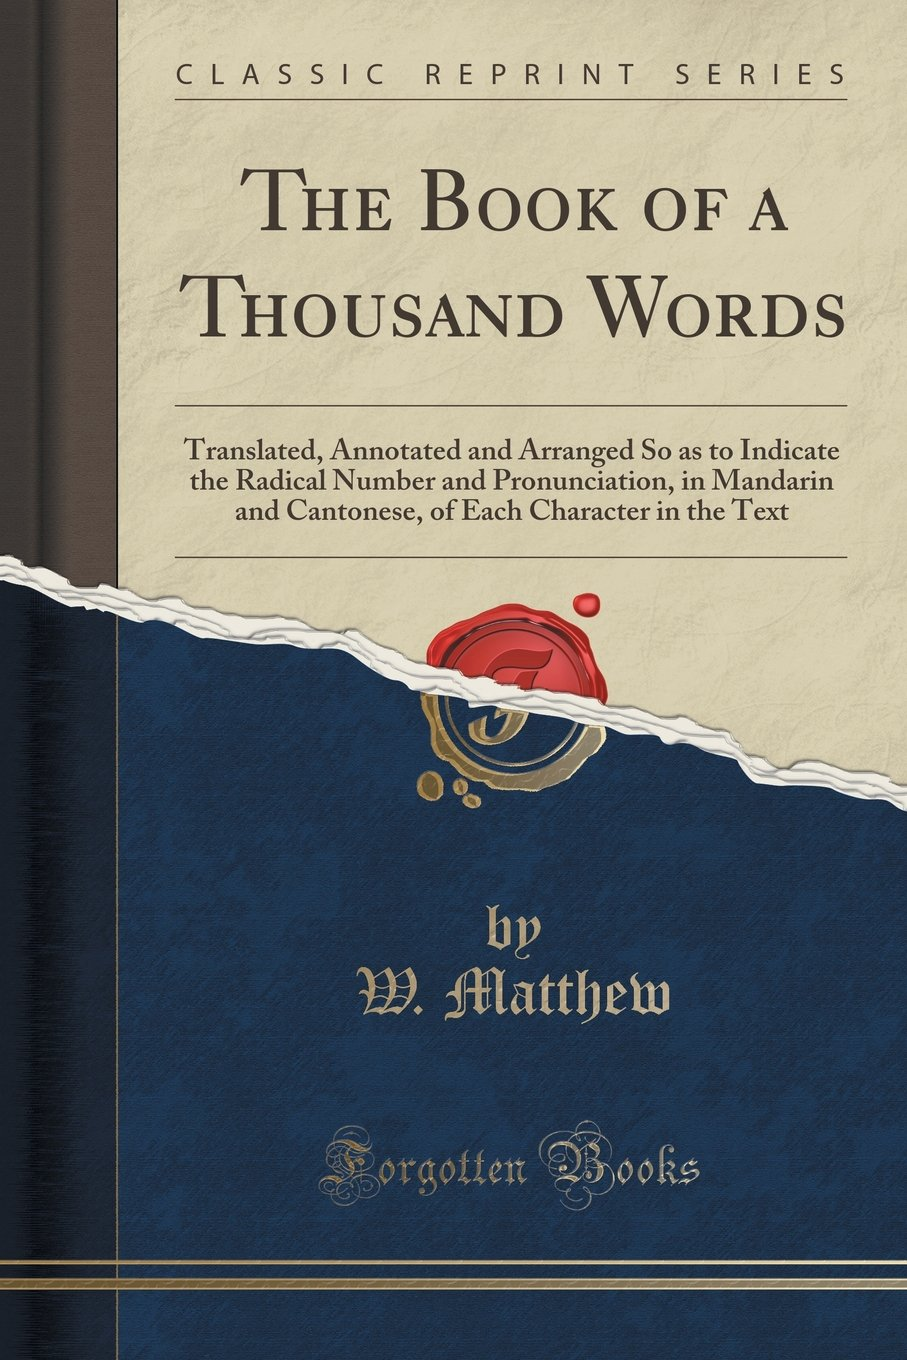 The Book of a Thousand Words: Translated, Annotated and Arranged So as to Indicate the Radical Number and Pronunciation, in Mandarin and Cantonese, of Each Character in the Text (Classic Reprint) ebook